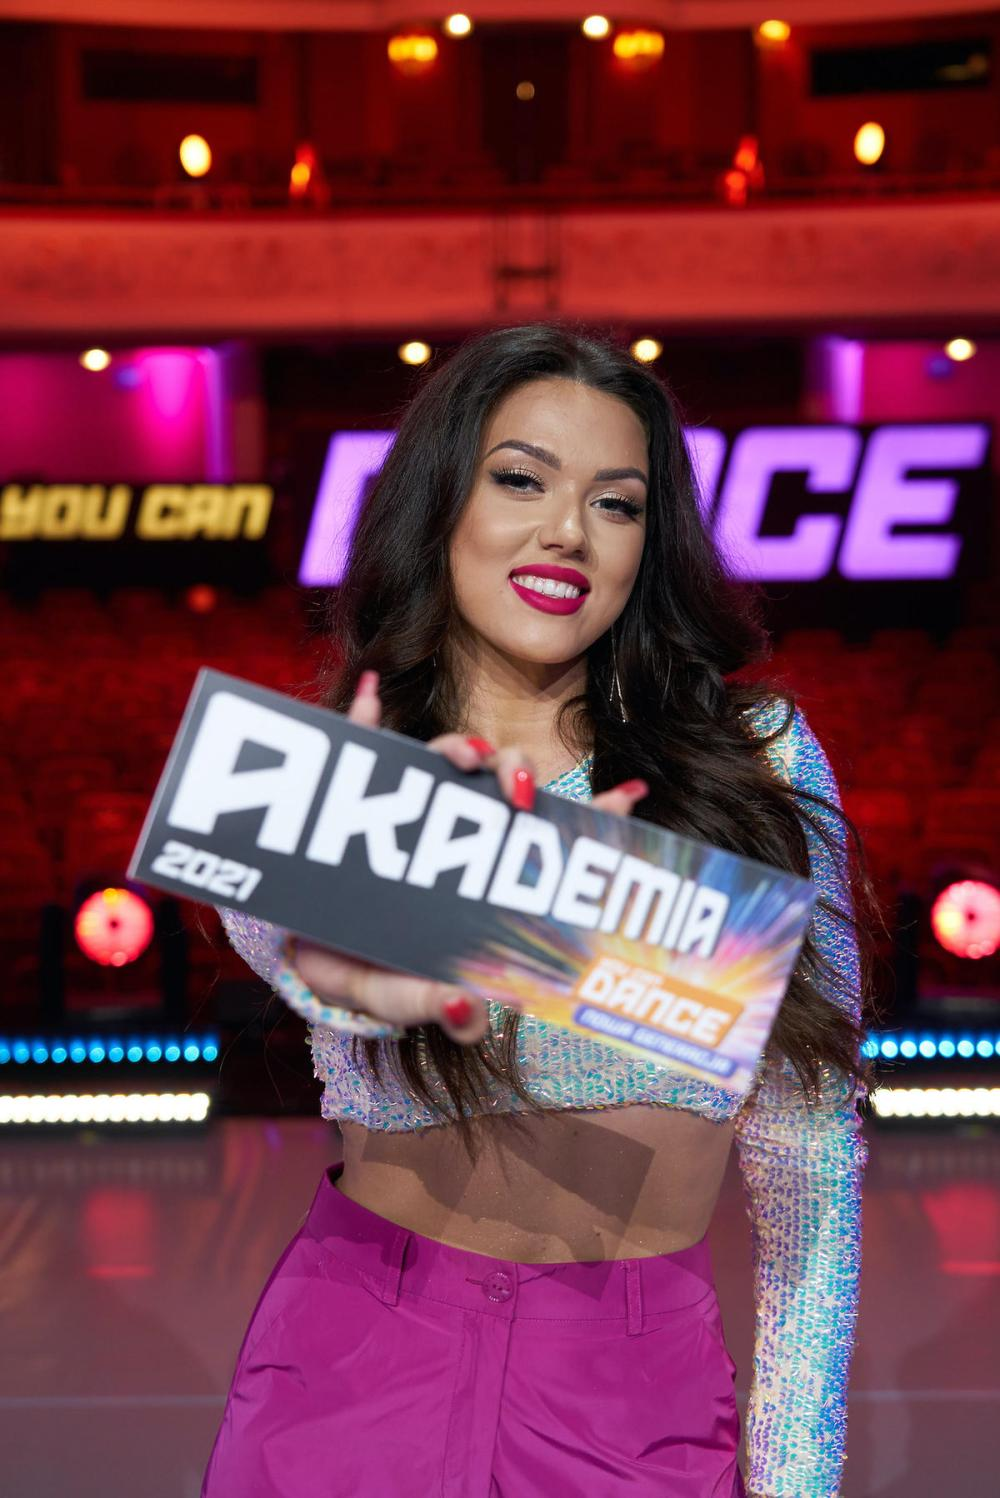 Klaudia Antos in You Can Dance - new generation